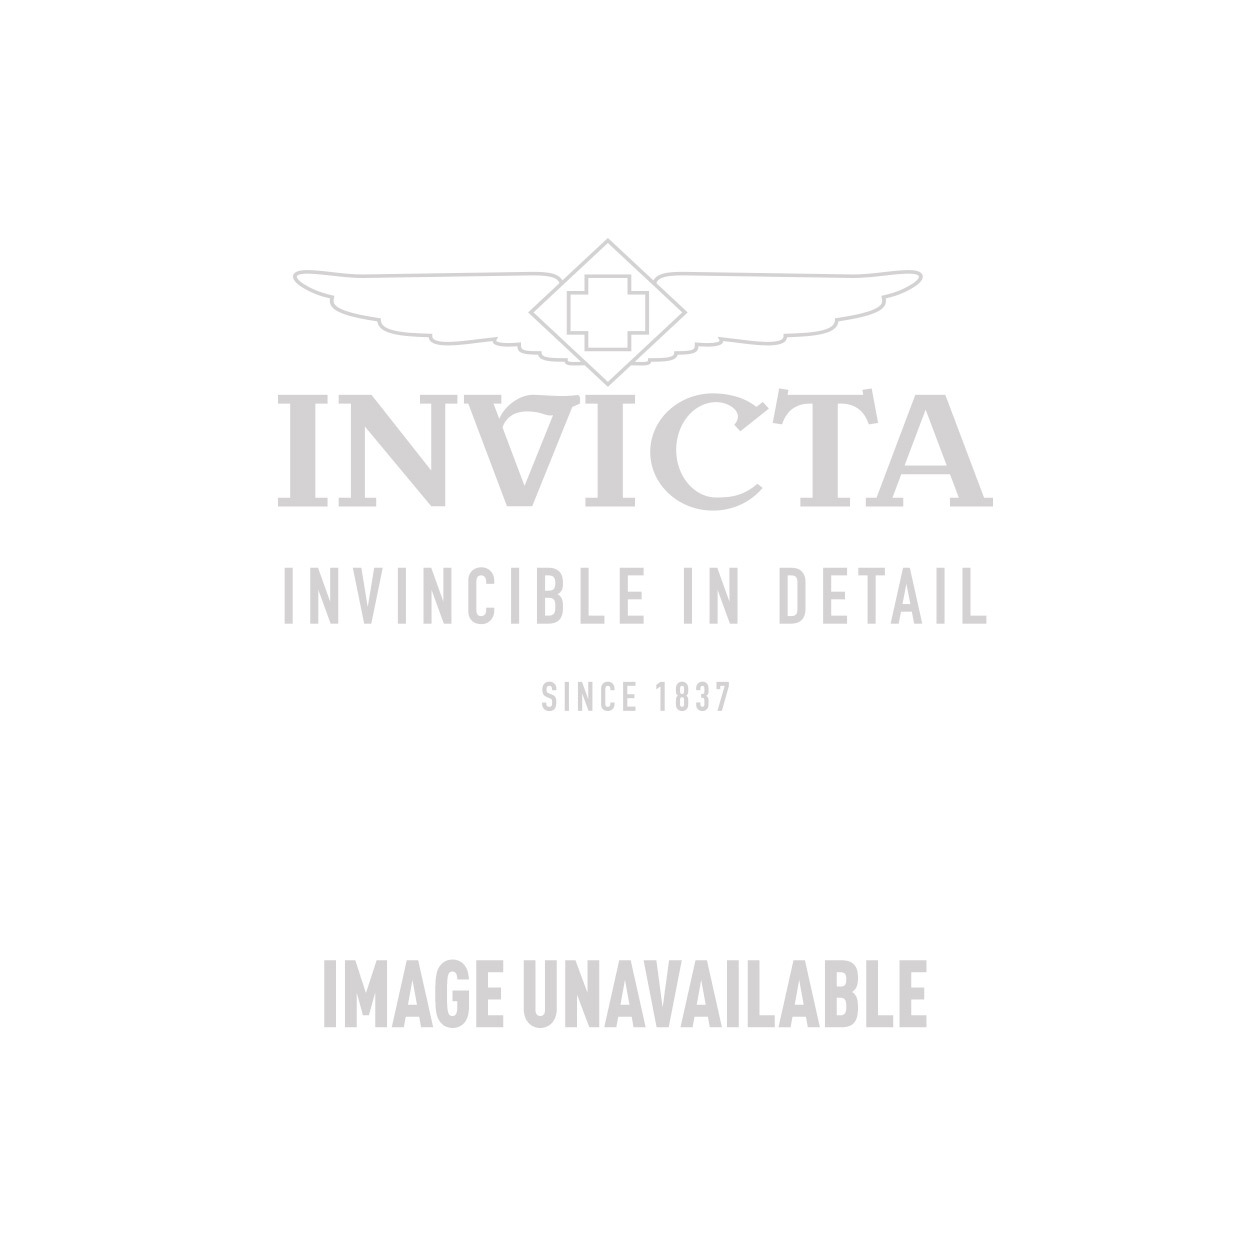 Invicta Reserve  Quartz Watch - Stainless Steel case with Black tone Silicone and Steel band - Model 21644